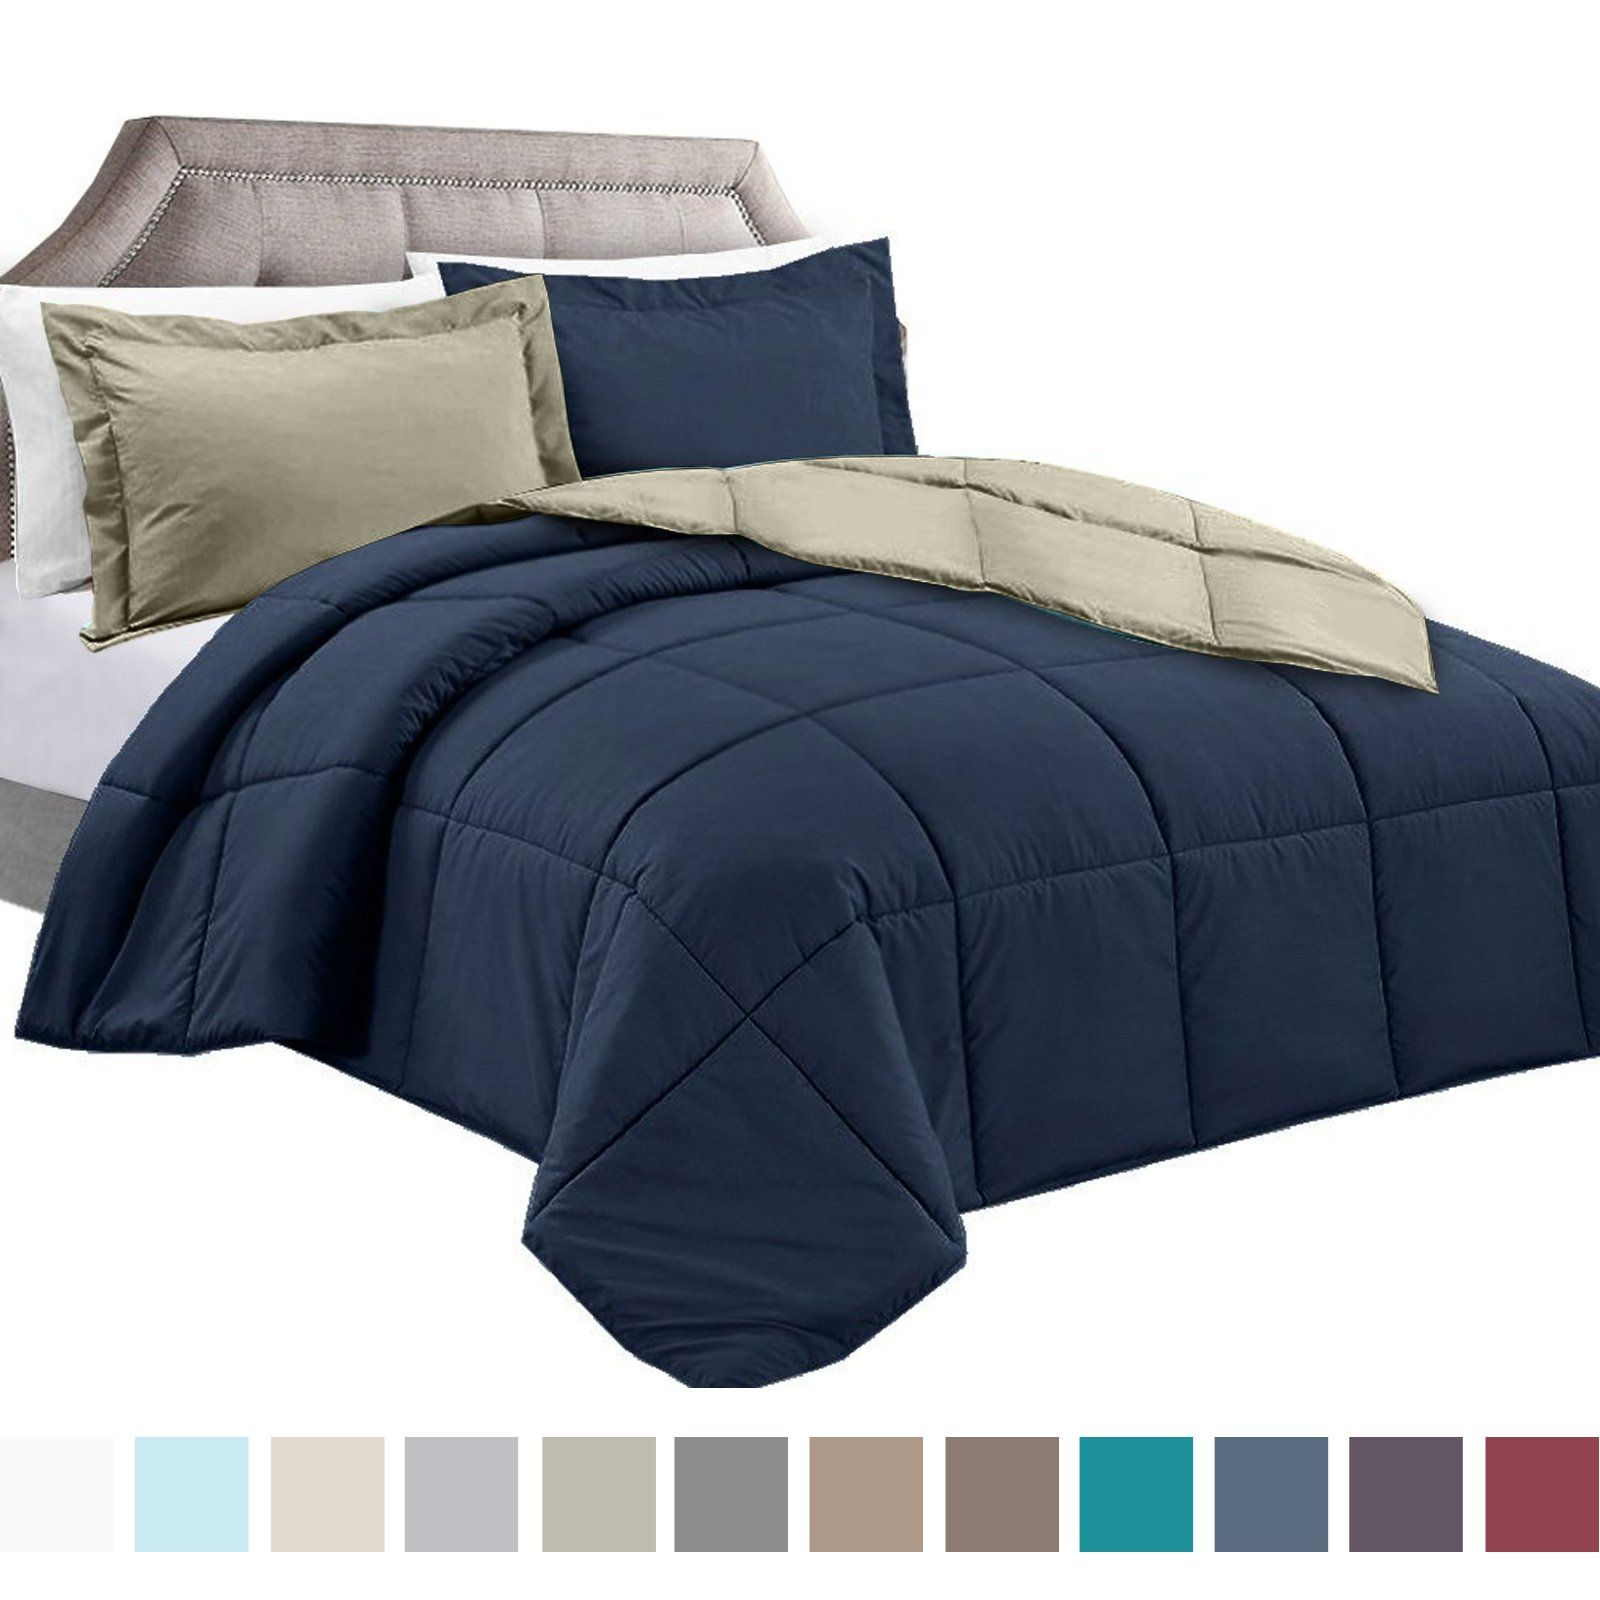 white super light quilted feather down top save medium fluffy oversized beyond beds fiberfill dsc queen duvet tabs comforter siliconized purple corner manzoo machine rty full bath weight stitched with hypoallergenic duvets plush high alternative and size of insert fits quality pillow box washable